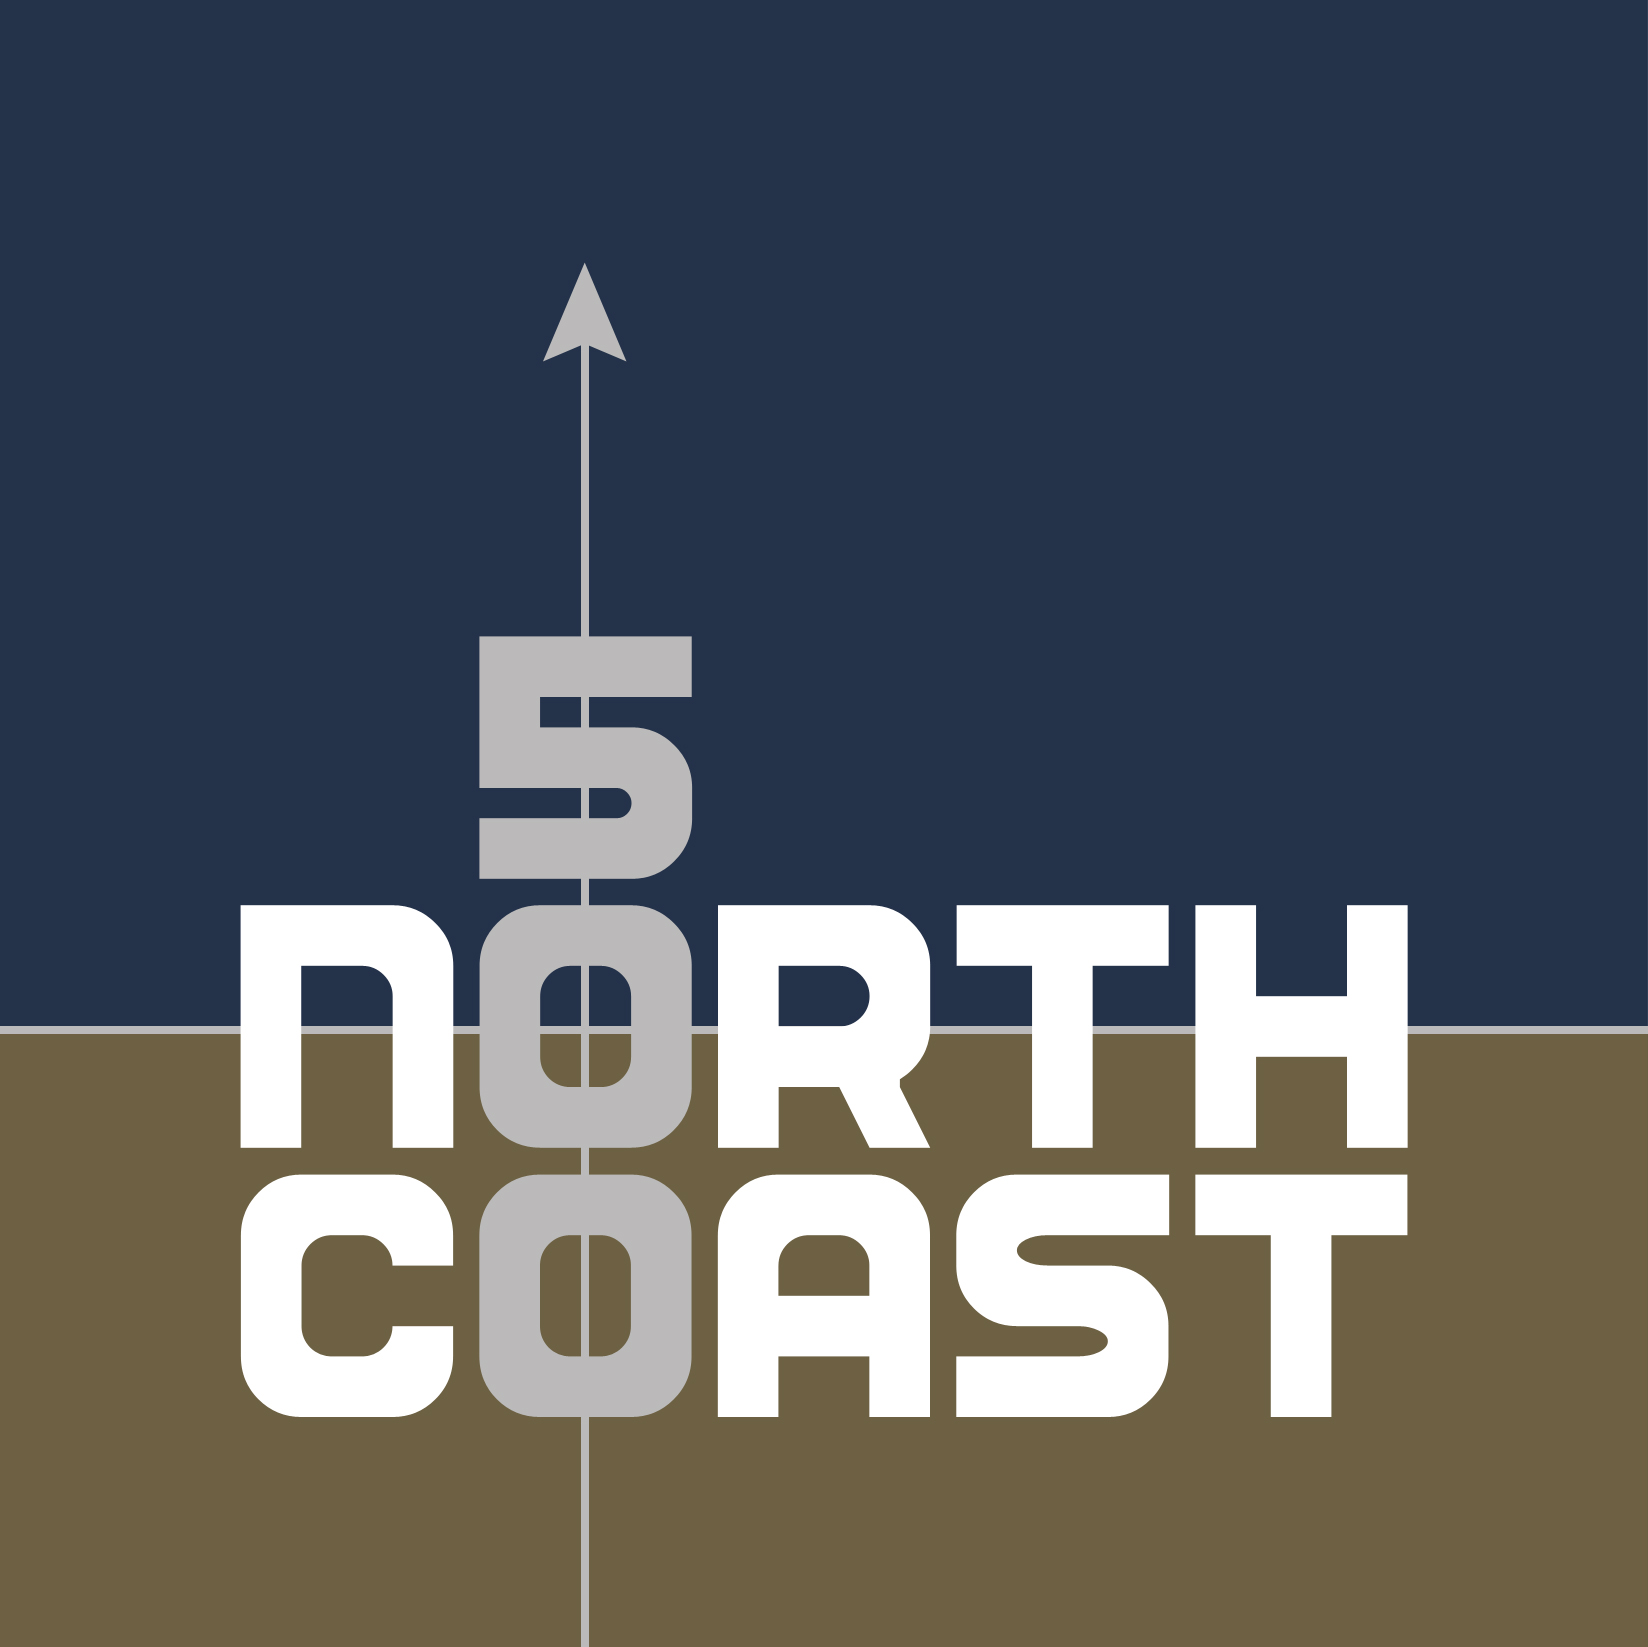 500 North Coast